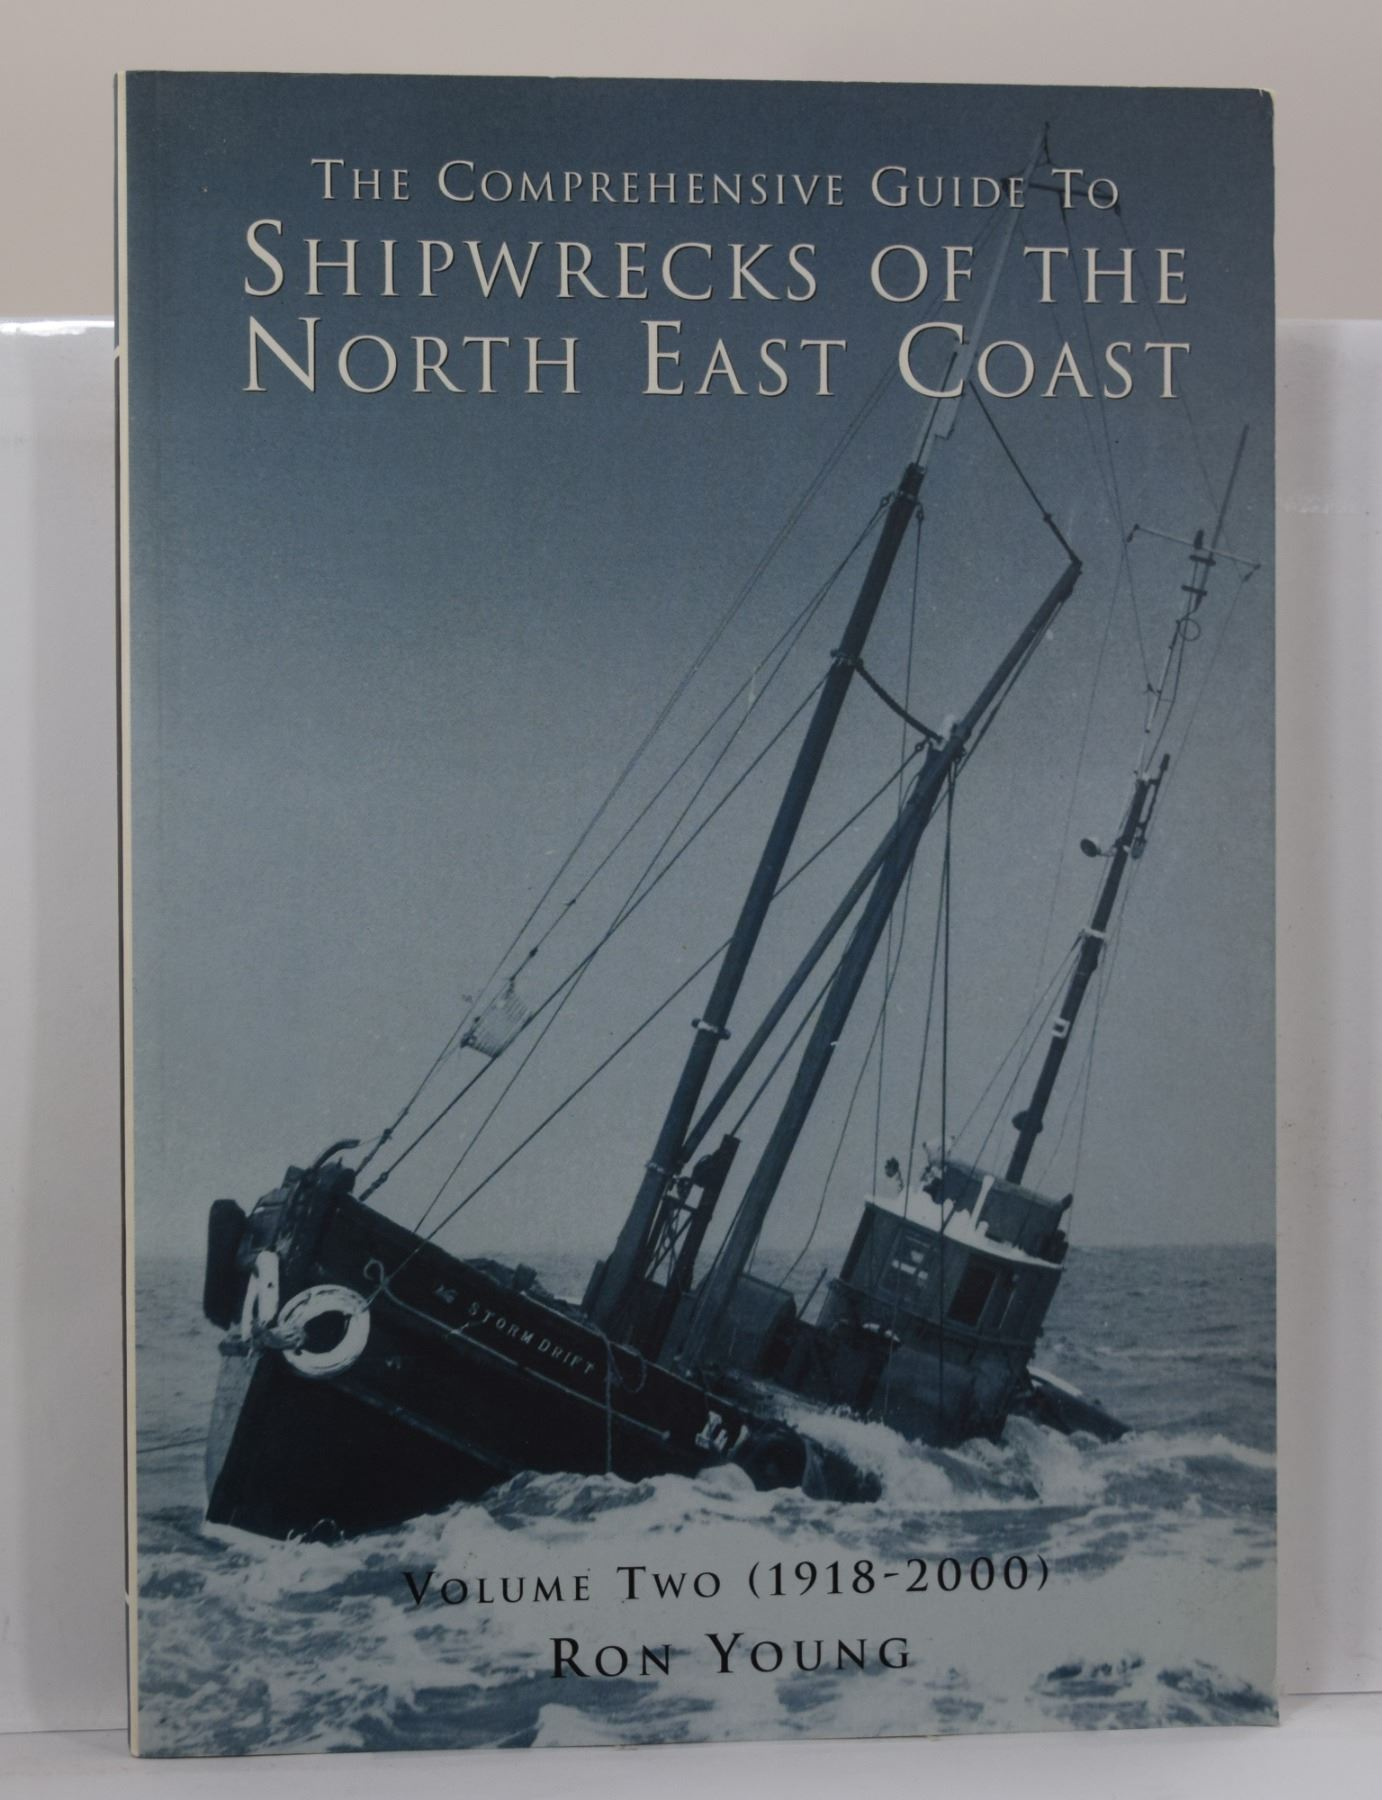 Young: The Compehensive Guide to Shipwrecks of the North